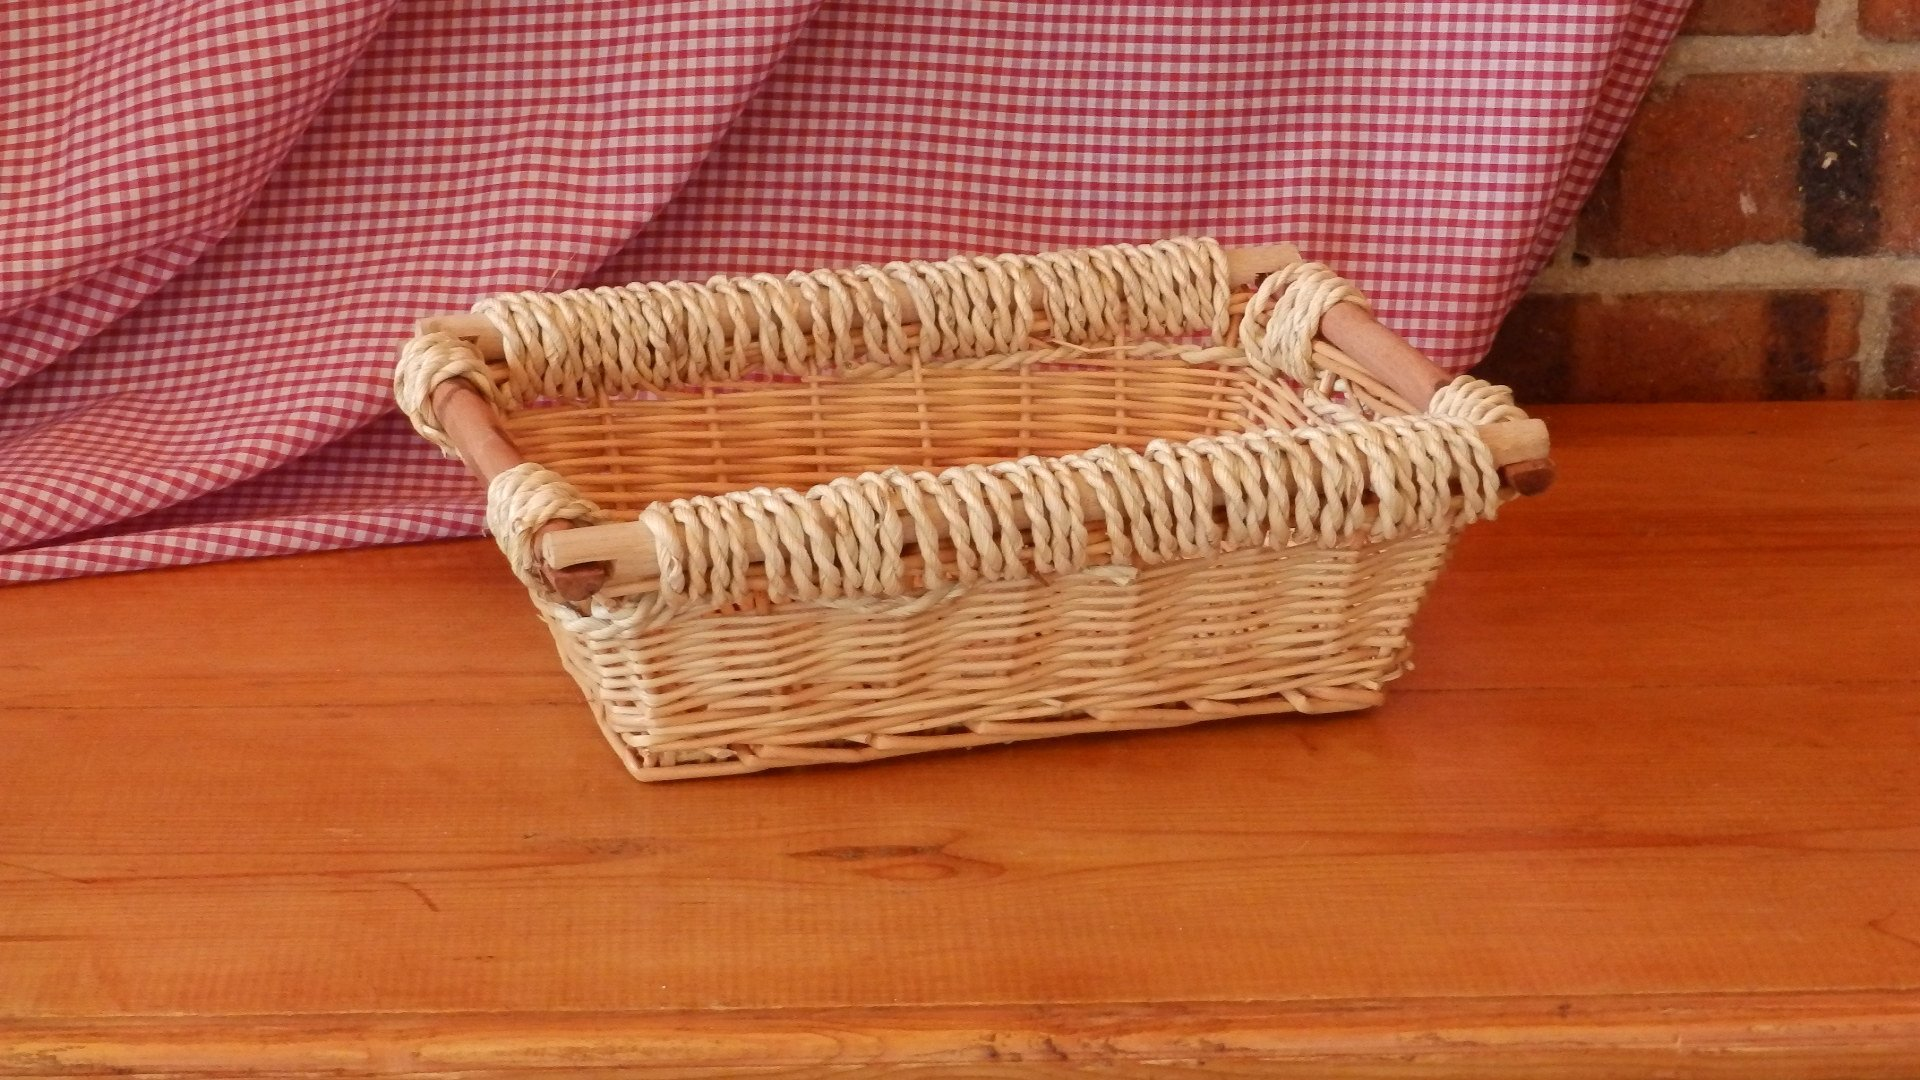 Rectangle basket with wooden handles